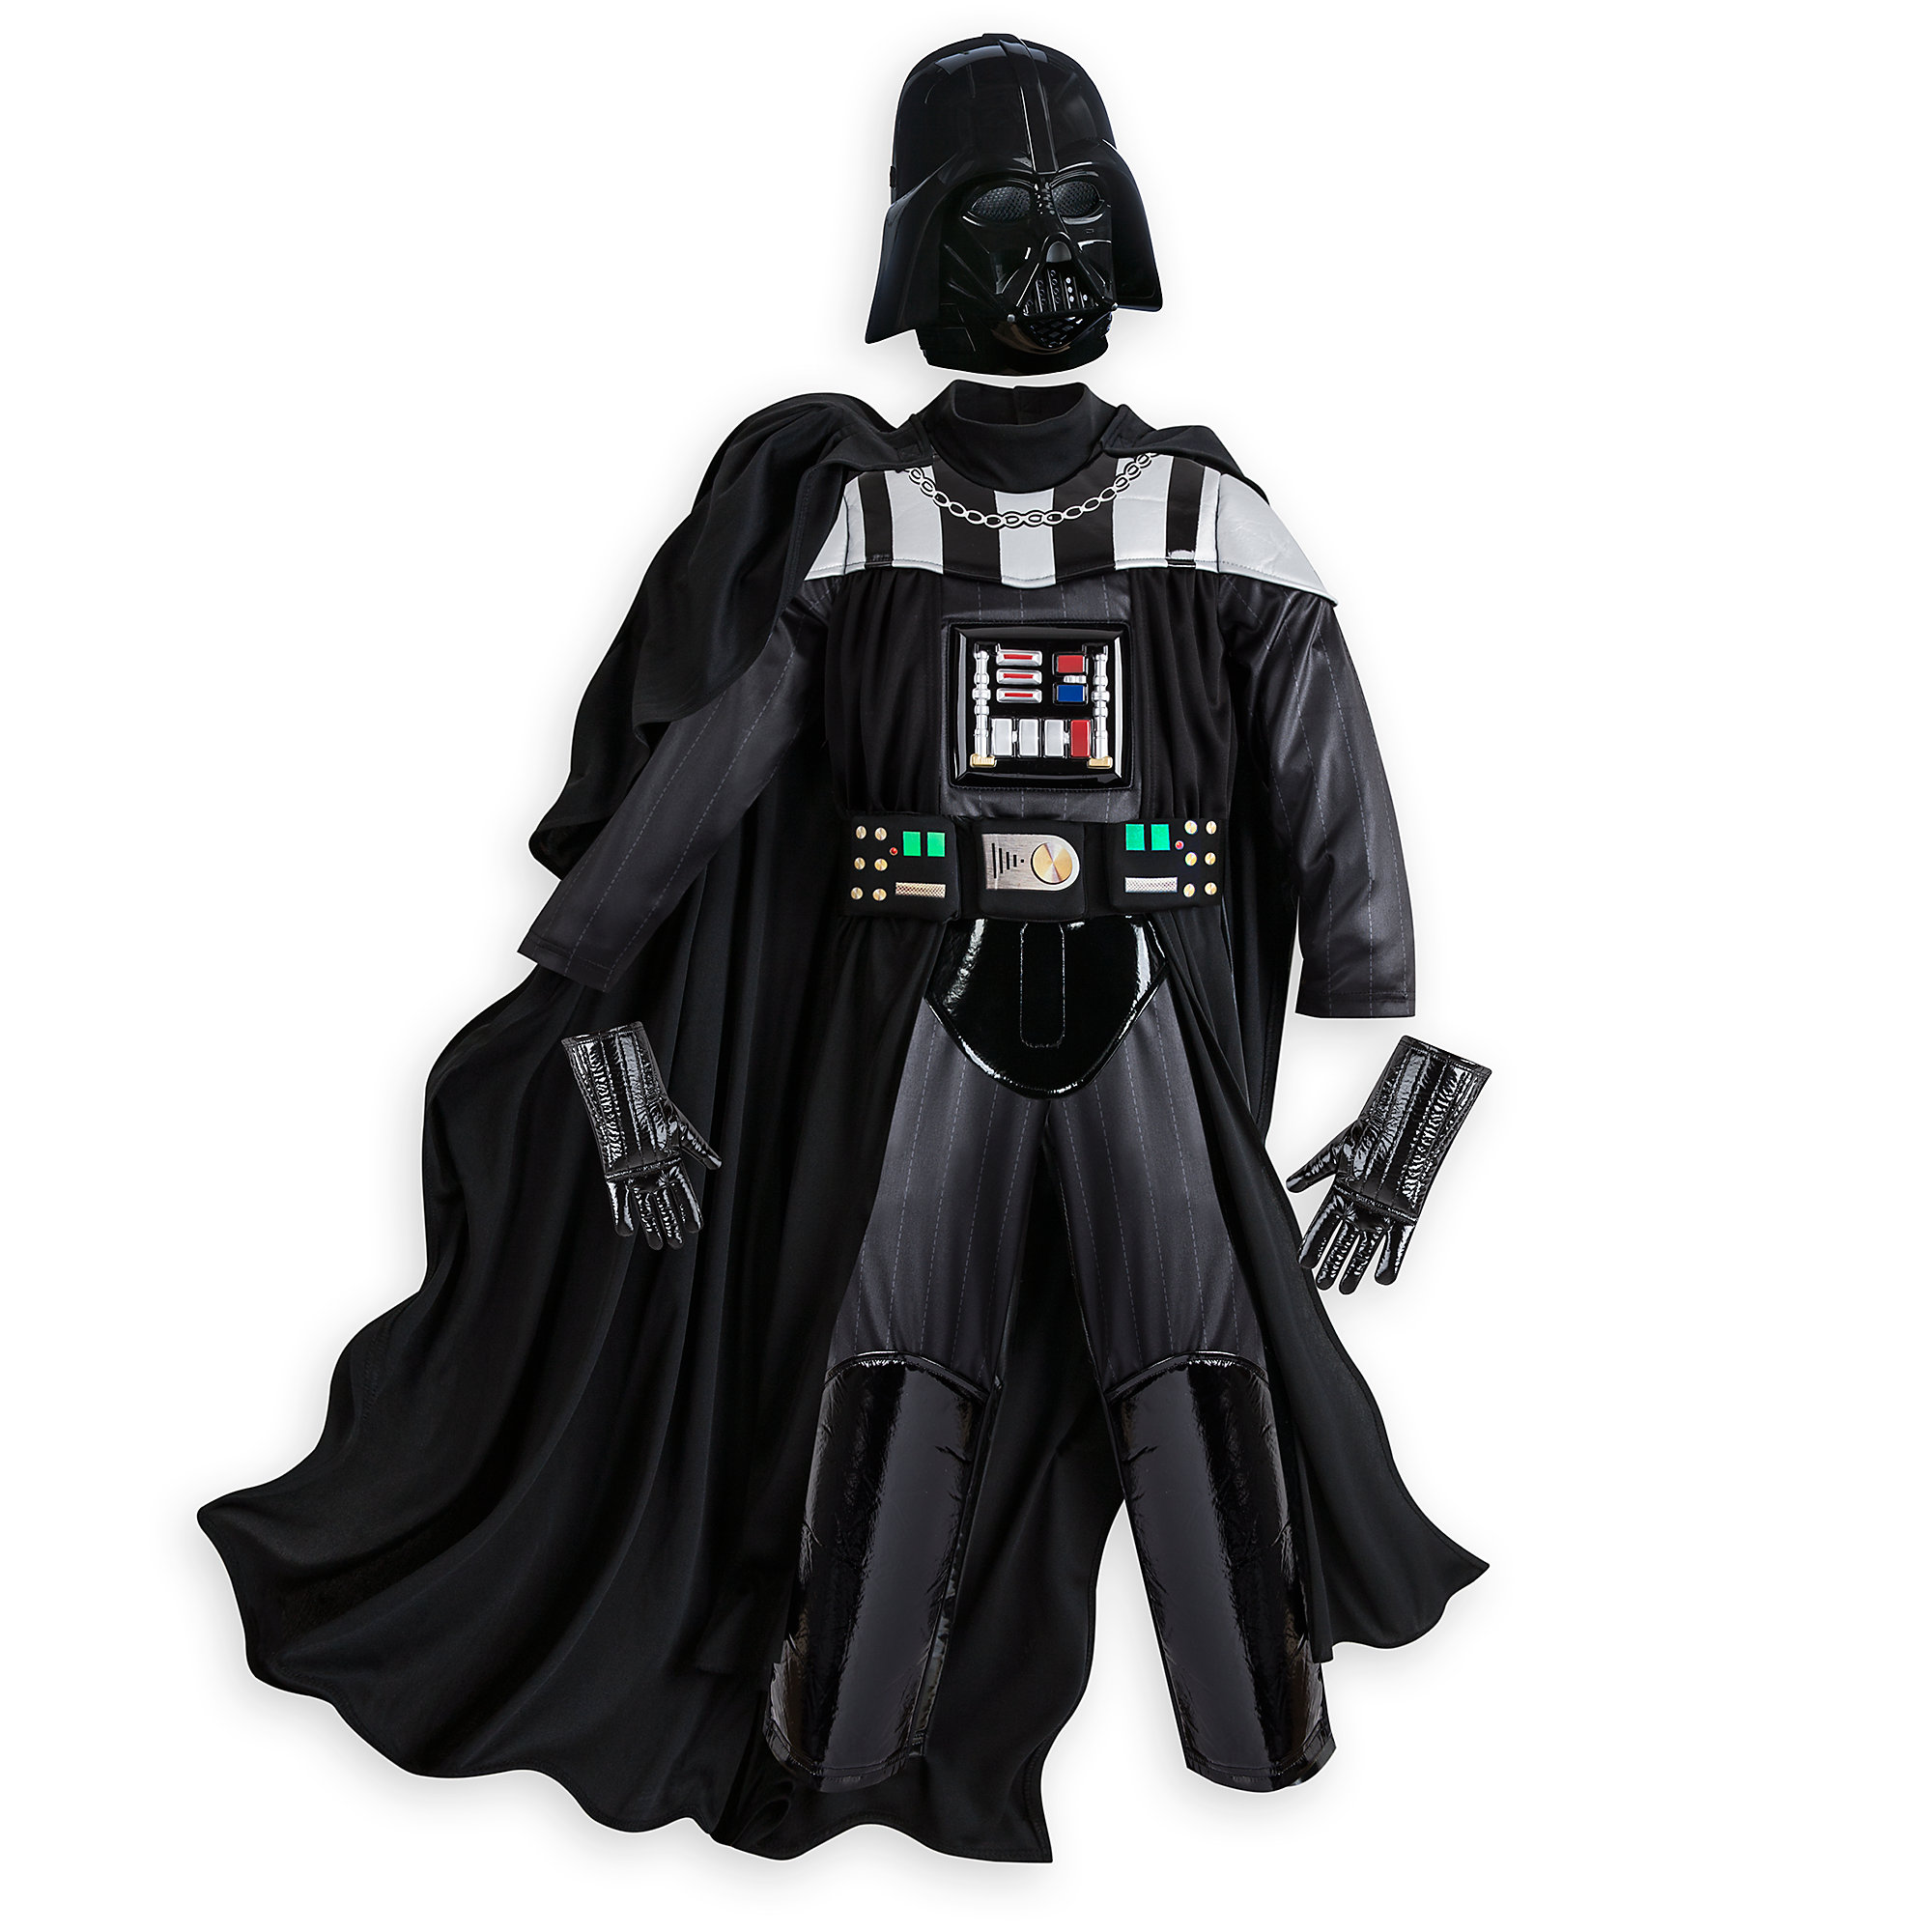 Comfortable Product Image Darth Vader Costume Kids Darth Vader Costume Sound Kids Shopdisney Darth Vader Costume Parts Darth Vader Costume Template Sound baby Darth Vader Costume